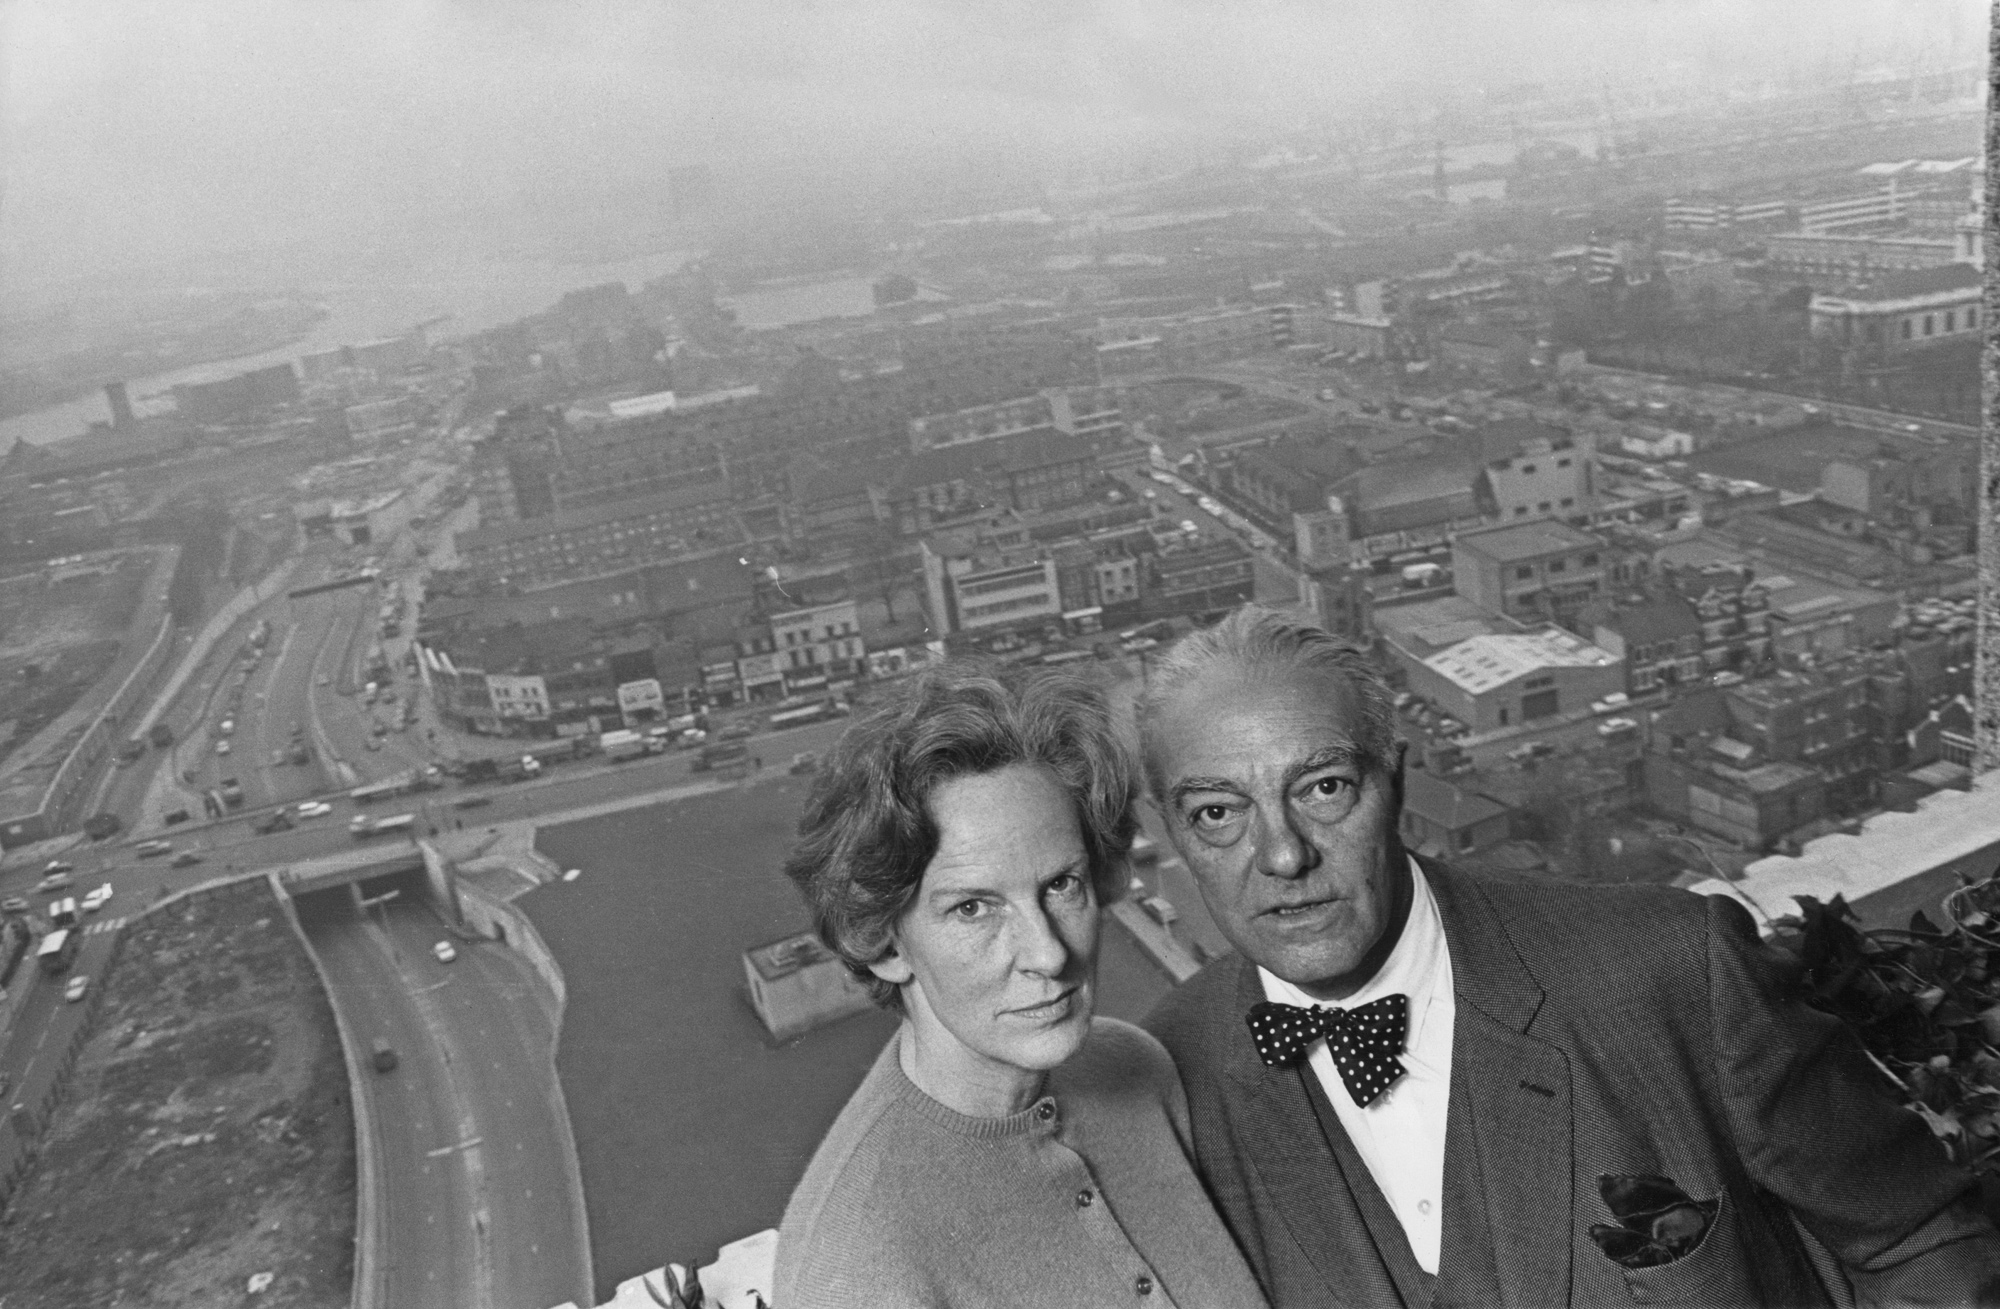 Photograph of Ernö and Ursula Goldfinger on their balcony in the Balfron Tower